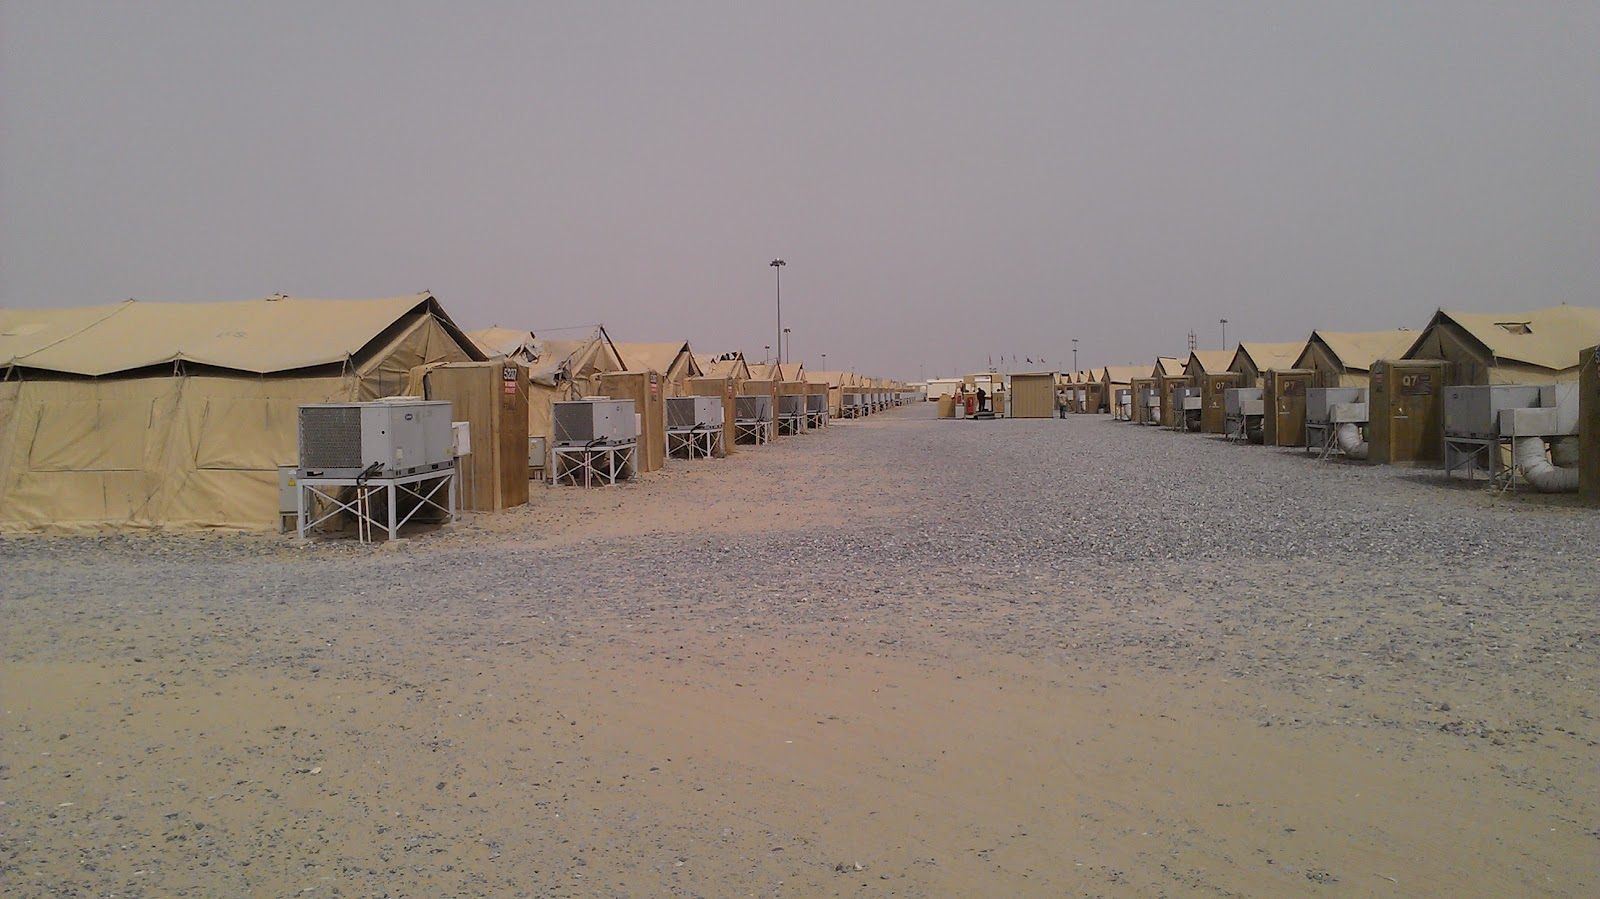 A box of thoughts welcome to kuwait the first days tents at ali al salem sciox Images